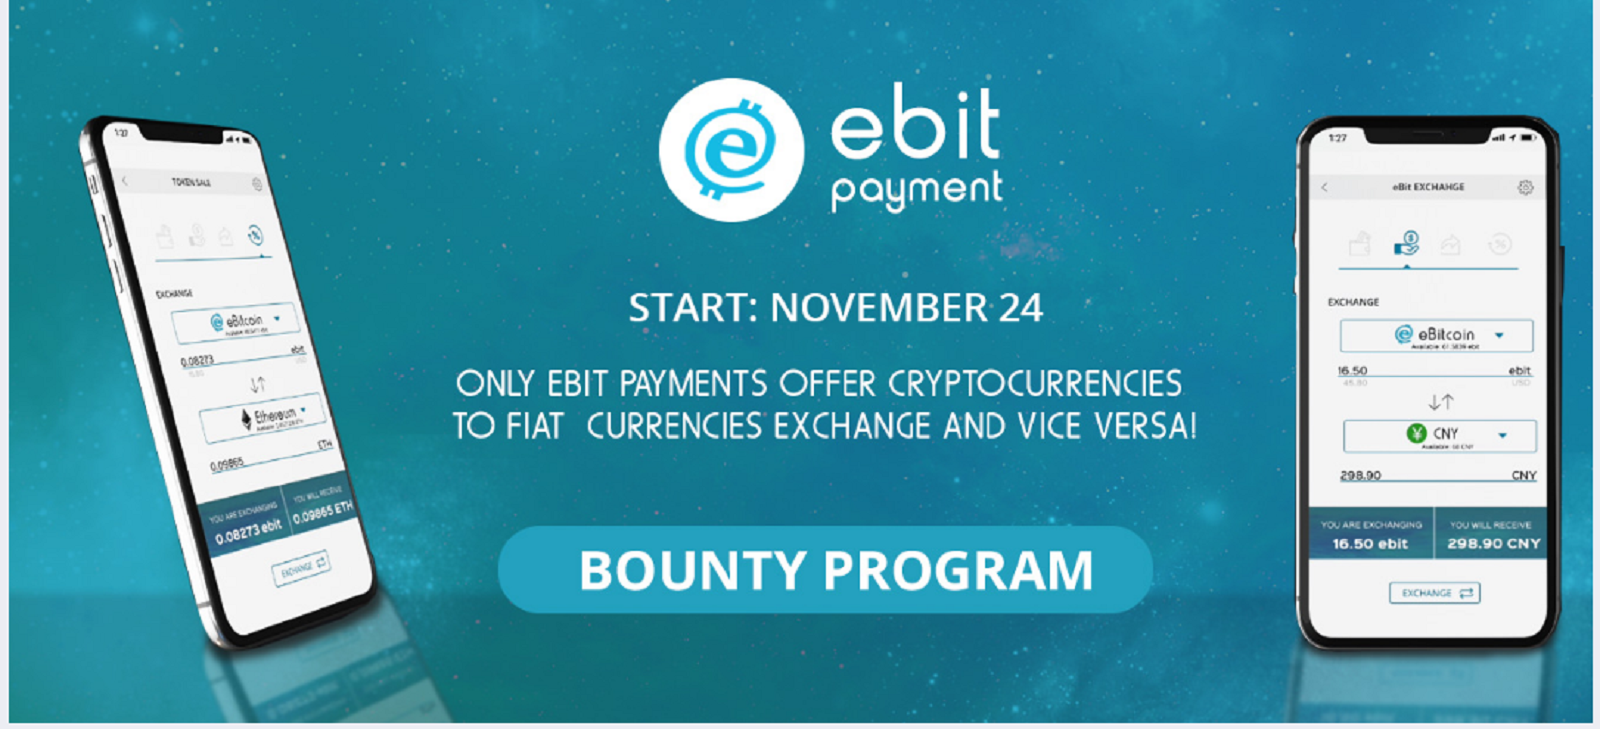 The EBitPayment